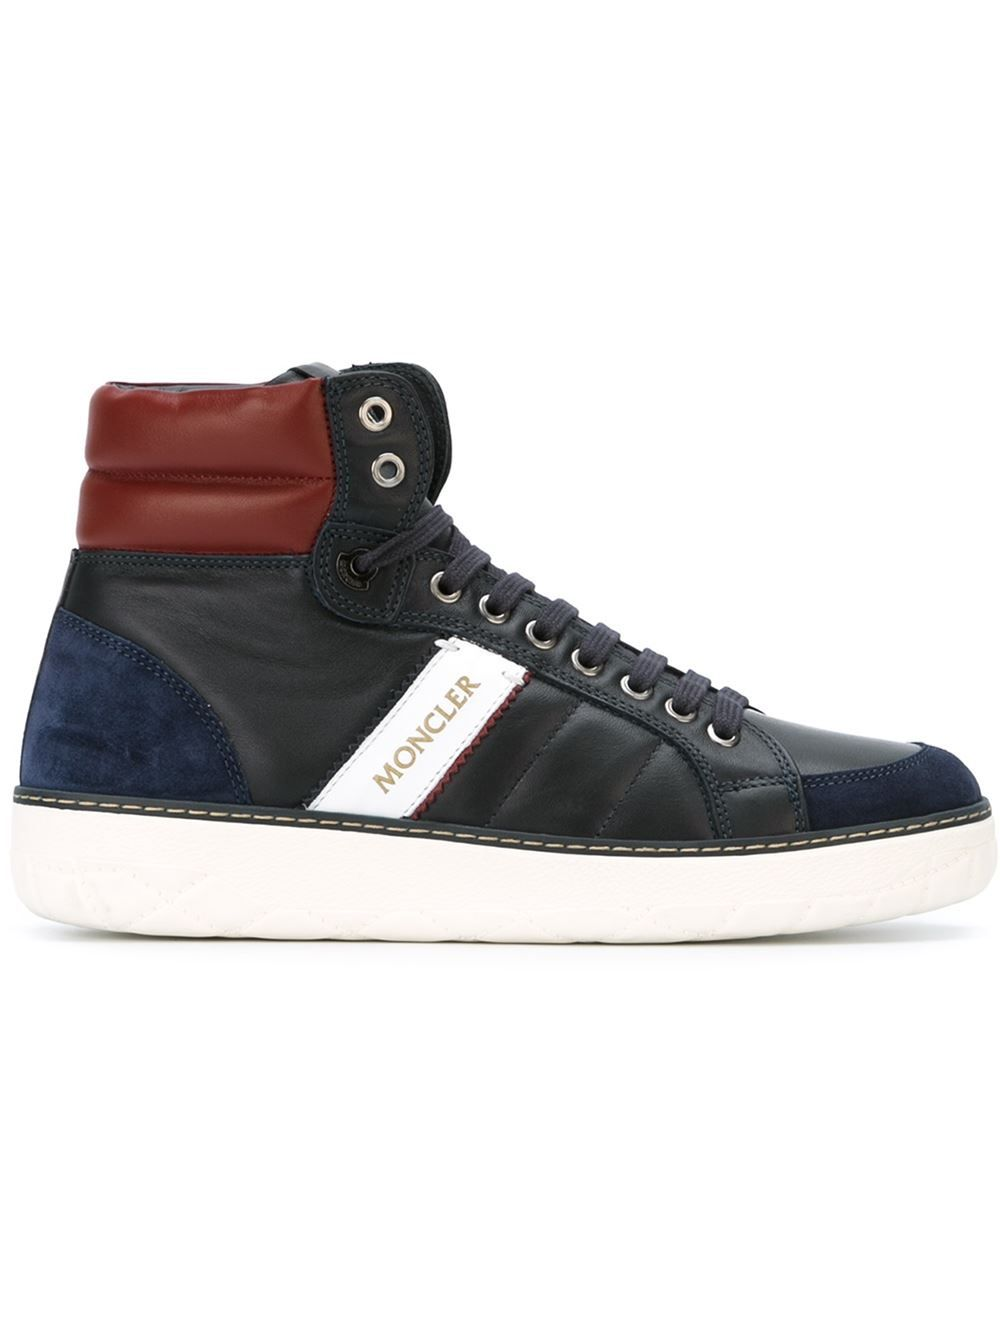 Moncler 'New Lyon' sneakers | High top sneakers, Sneakers